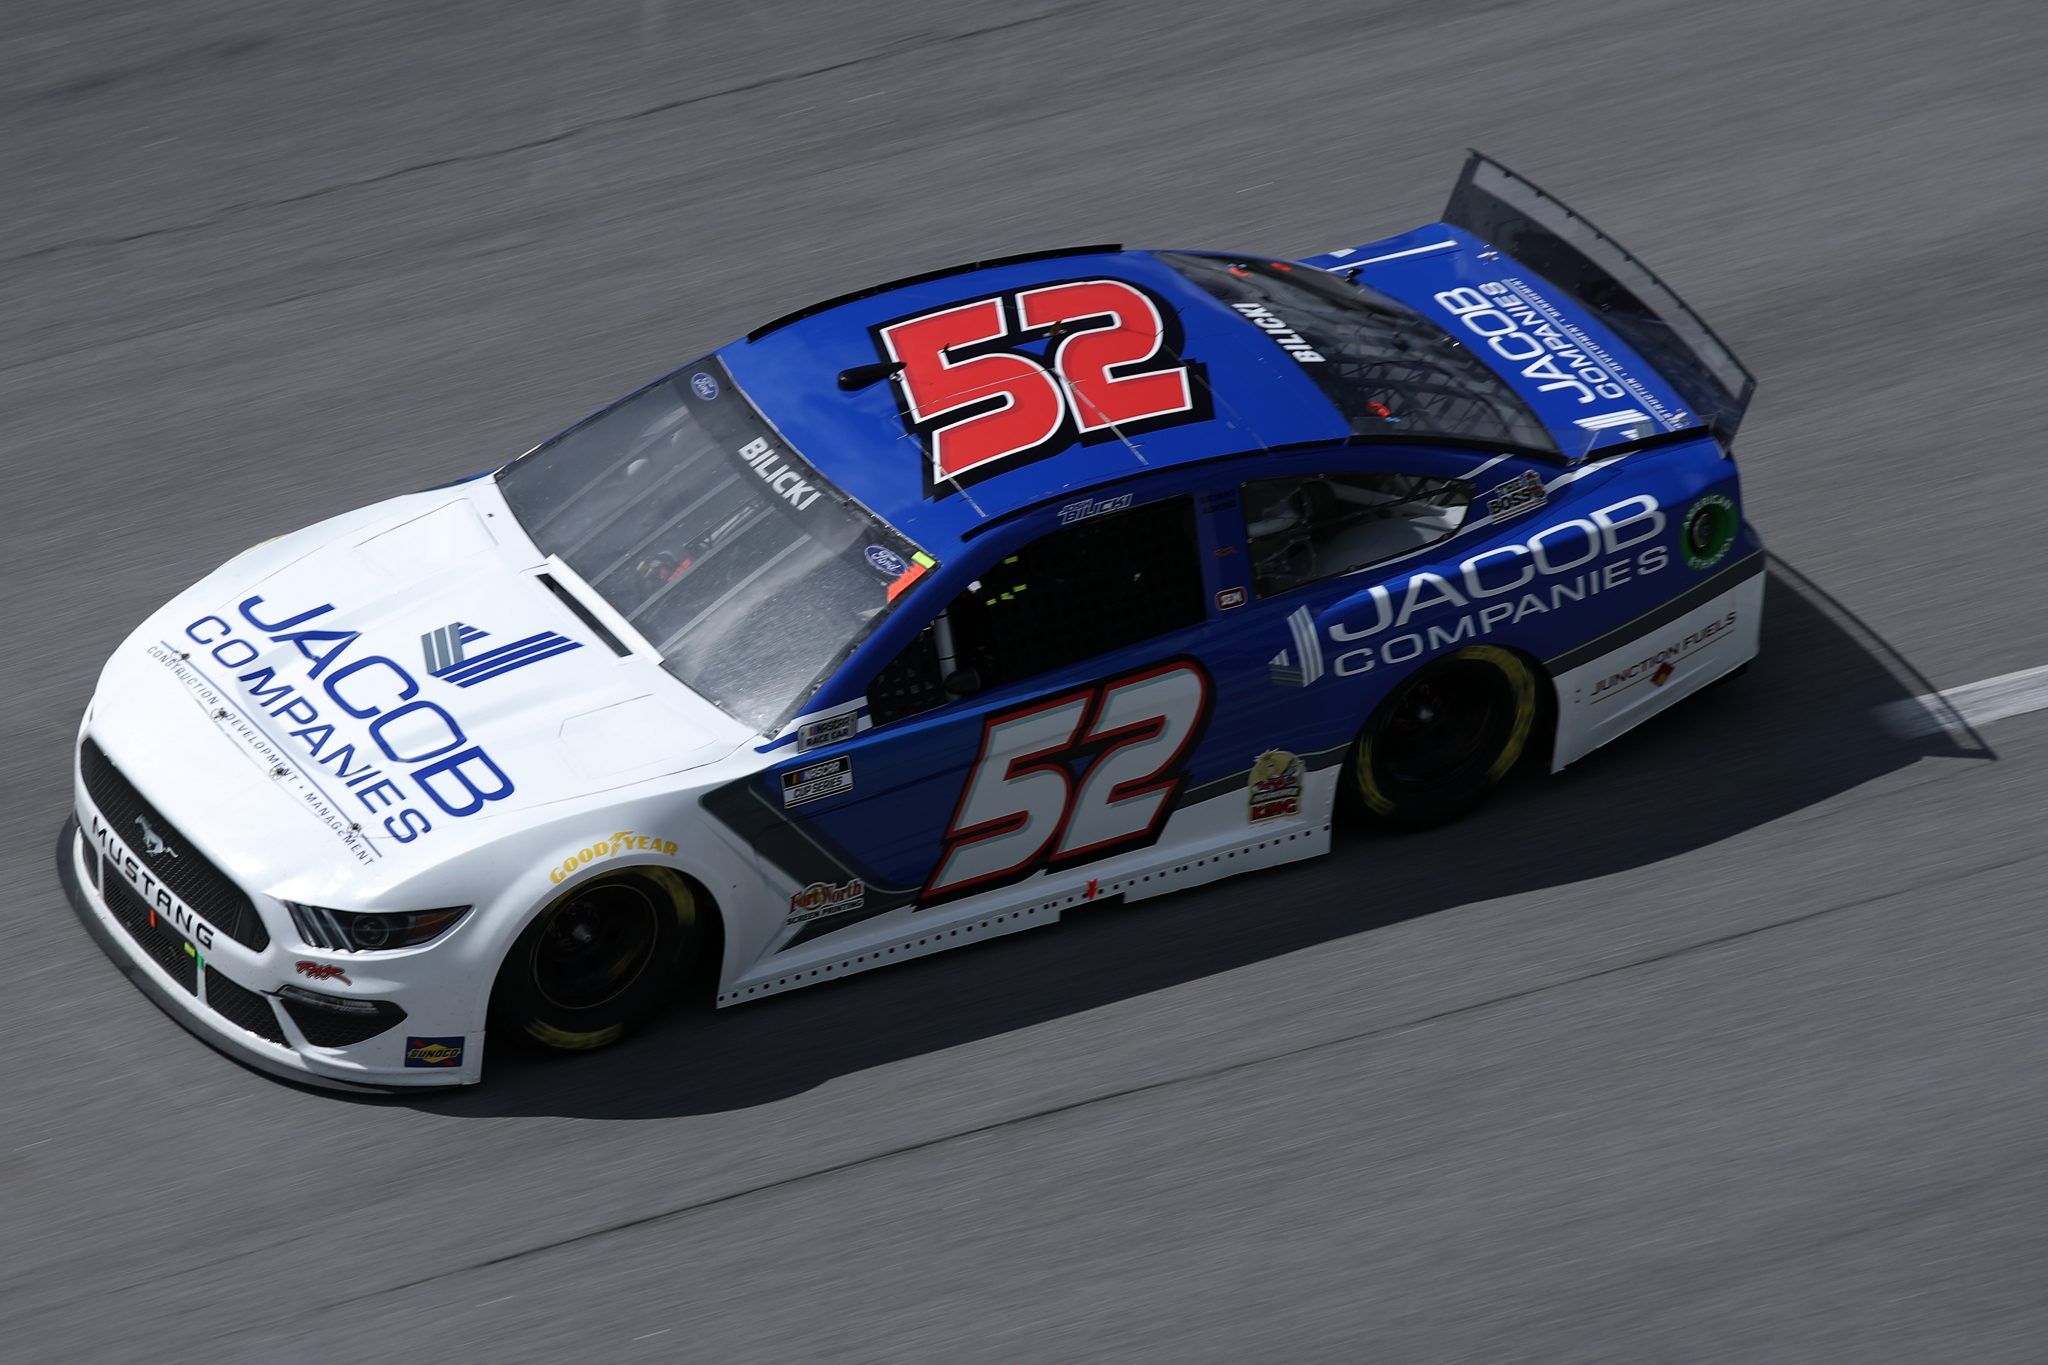 TALLADEGA, ALABAMA - APRIL 25: Josh Bilicki, driver of the #52 Ford, drives during the NASCAR Cup Series GEICO 500 at Talladega Superspeedway on April 25, 2021 in Talladega, Alabama. (Photo by Sean Gardner/Getty Images) | Getty Images